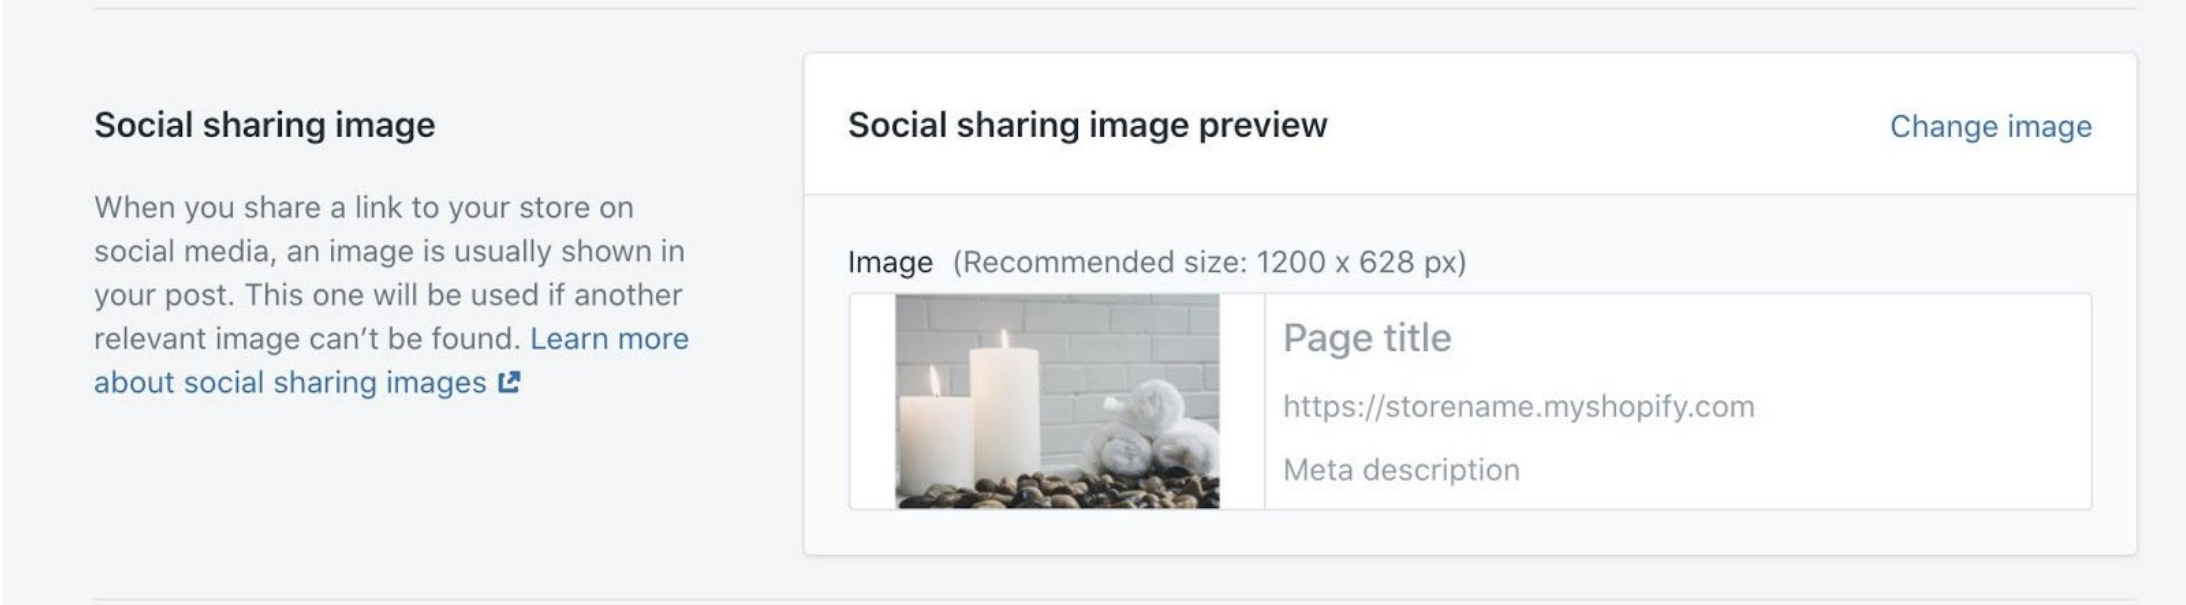 Admin settings showing a preview of an image shared on social media